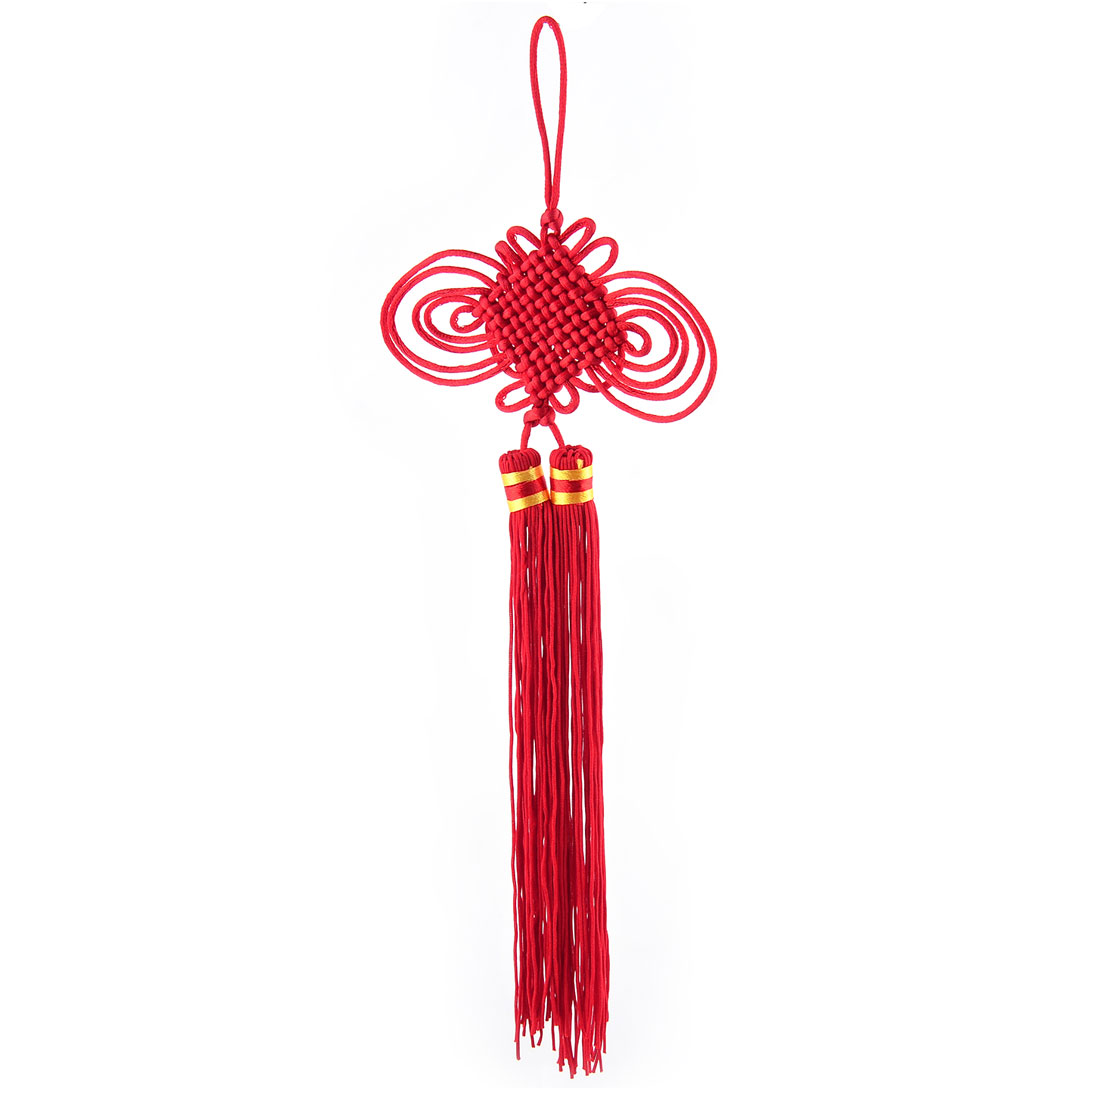 Flat Polyester Handmade Double Tassel Ornament Crafting Chinese Knot 34cm Length